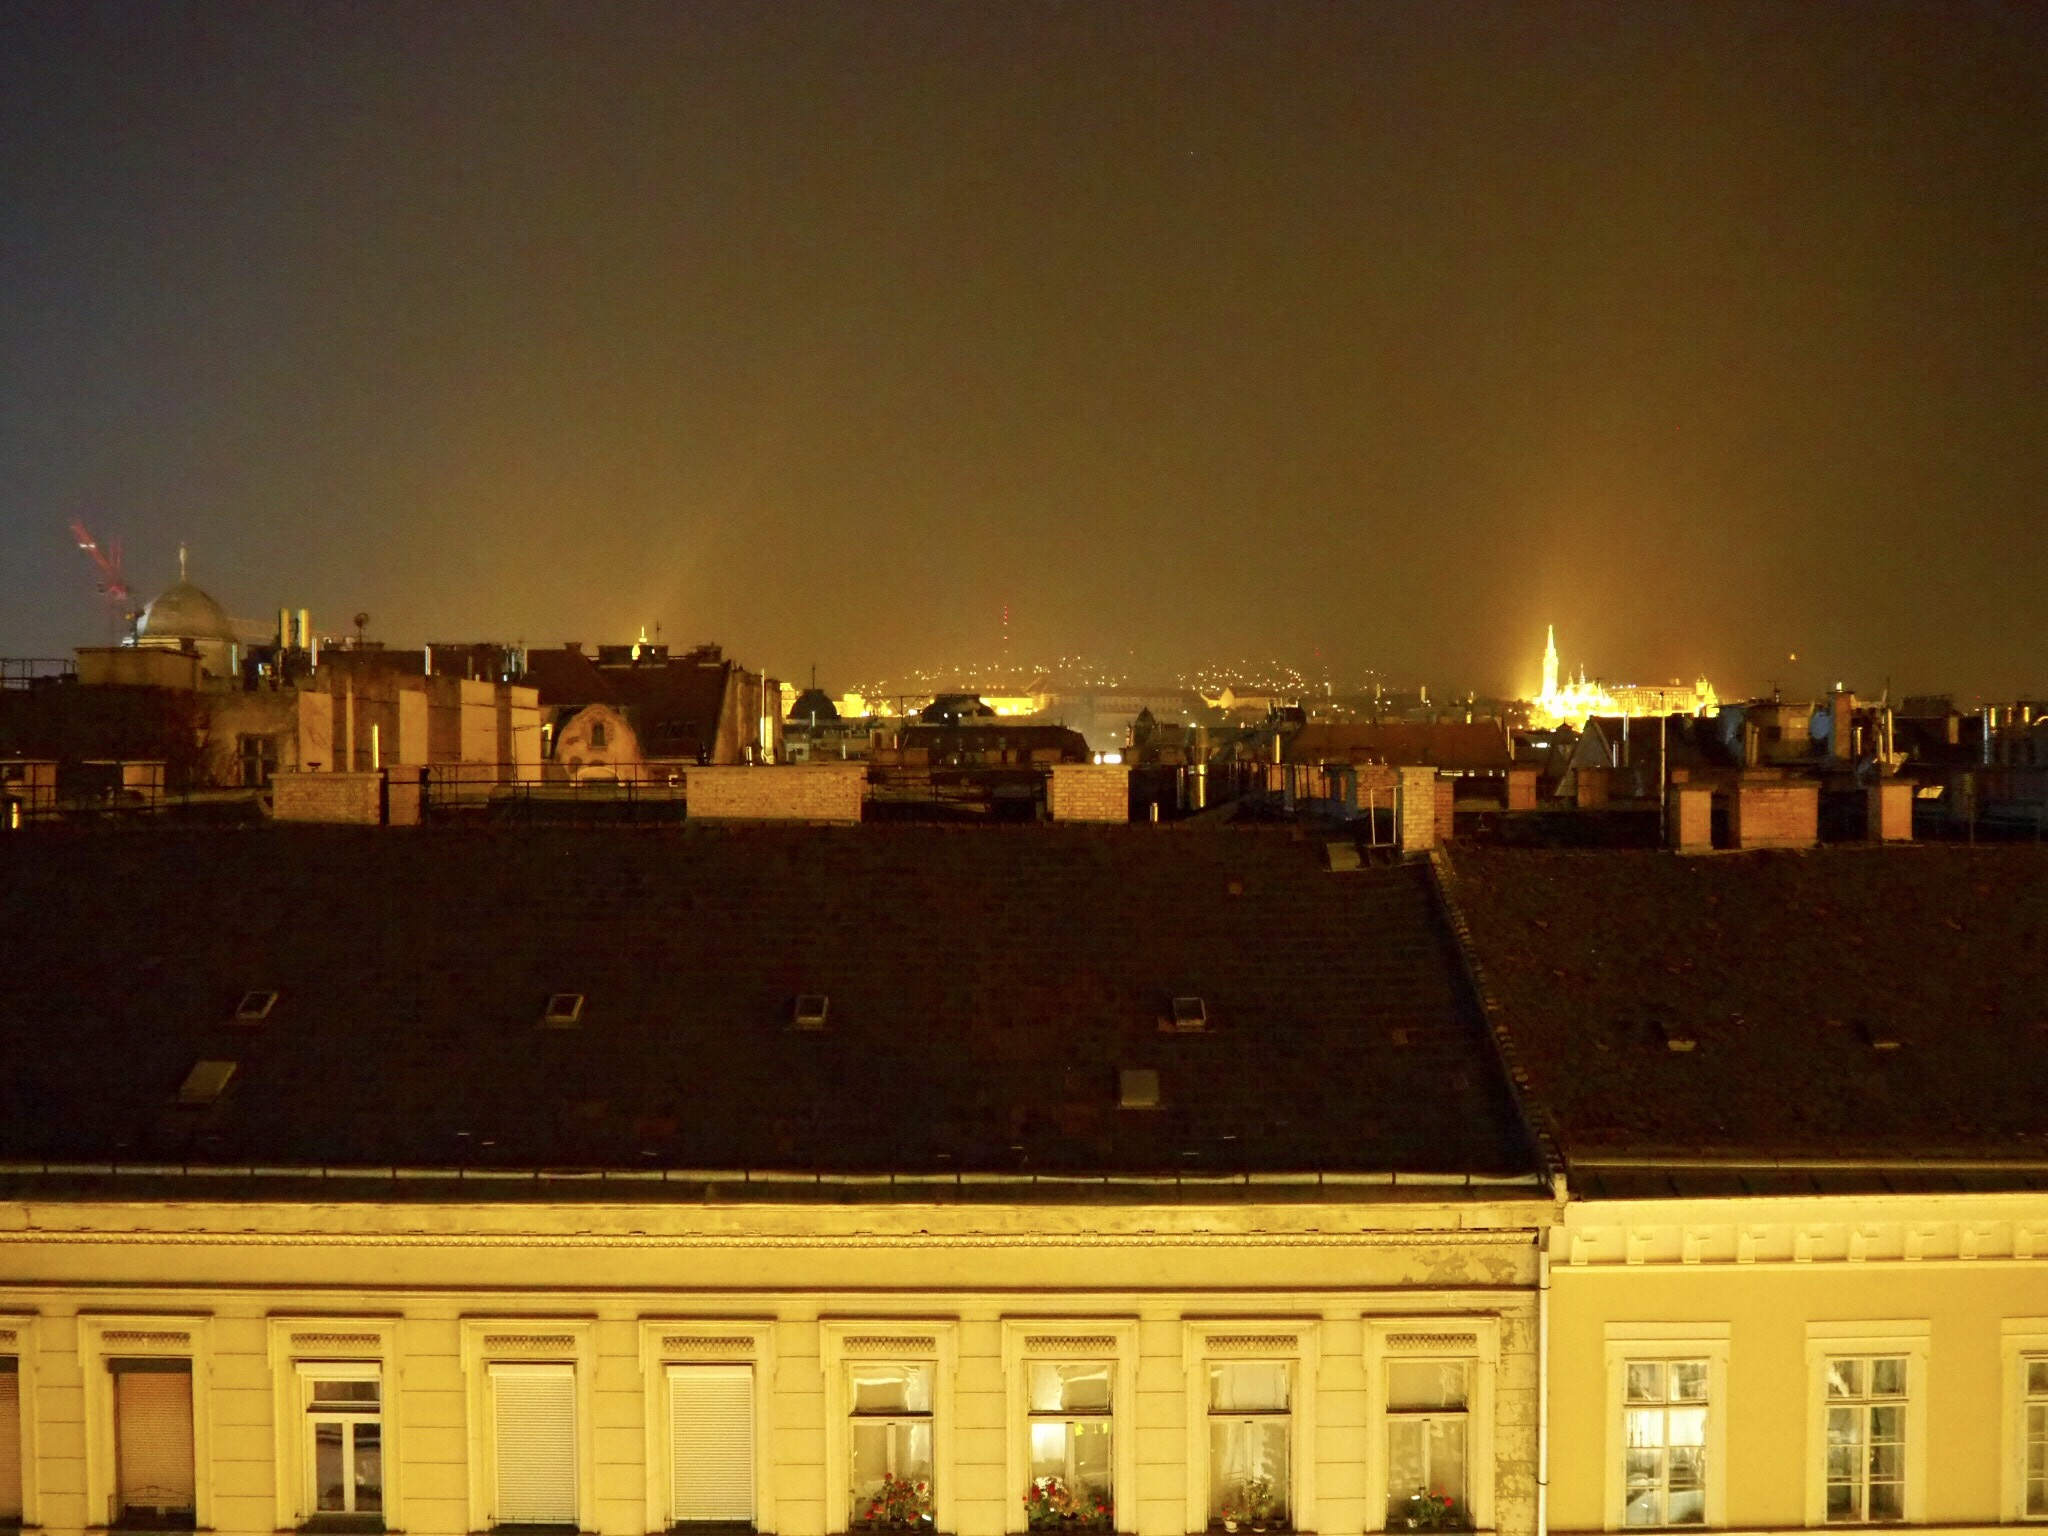 img 4832 - Aria Hotel Budapest - High Note Skybar で過ごすブダペストの夜